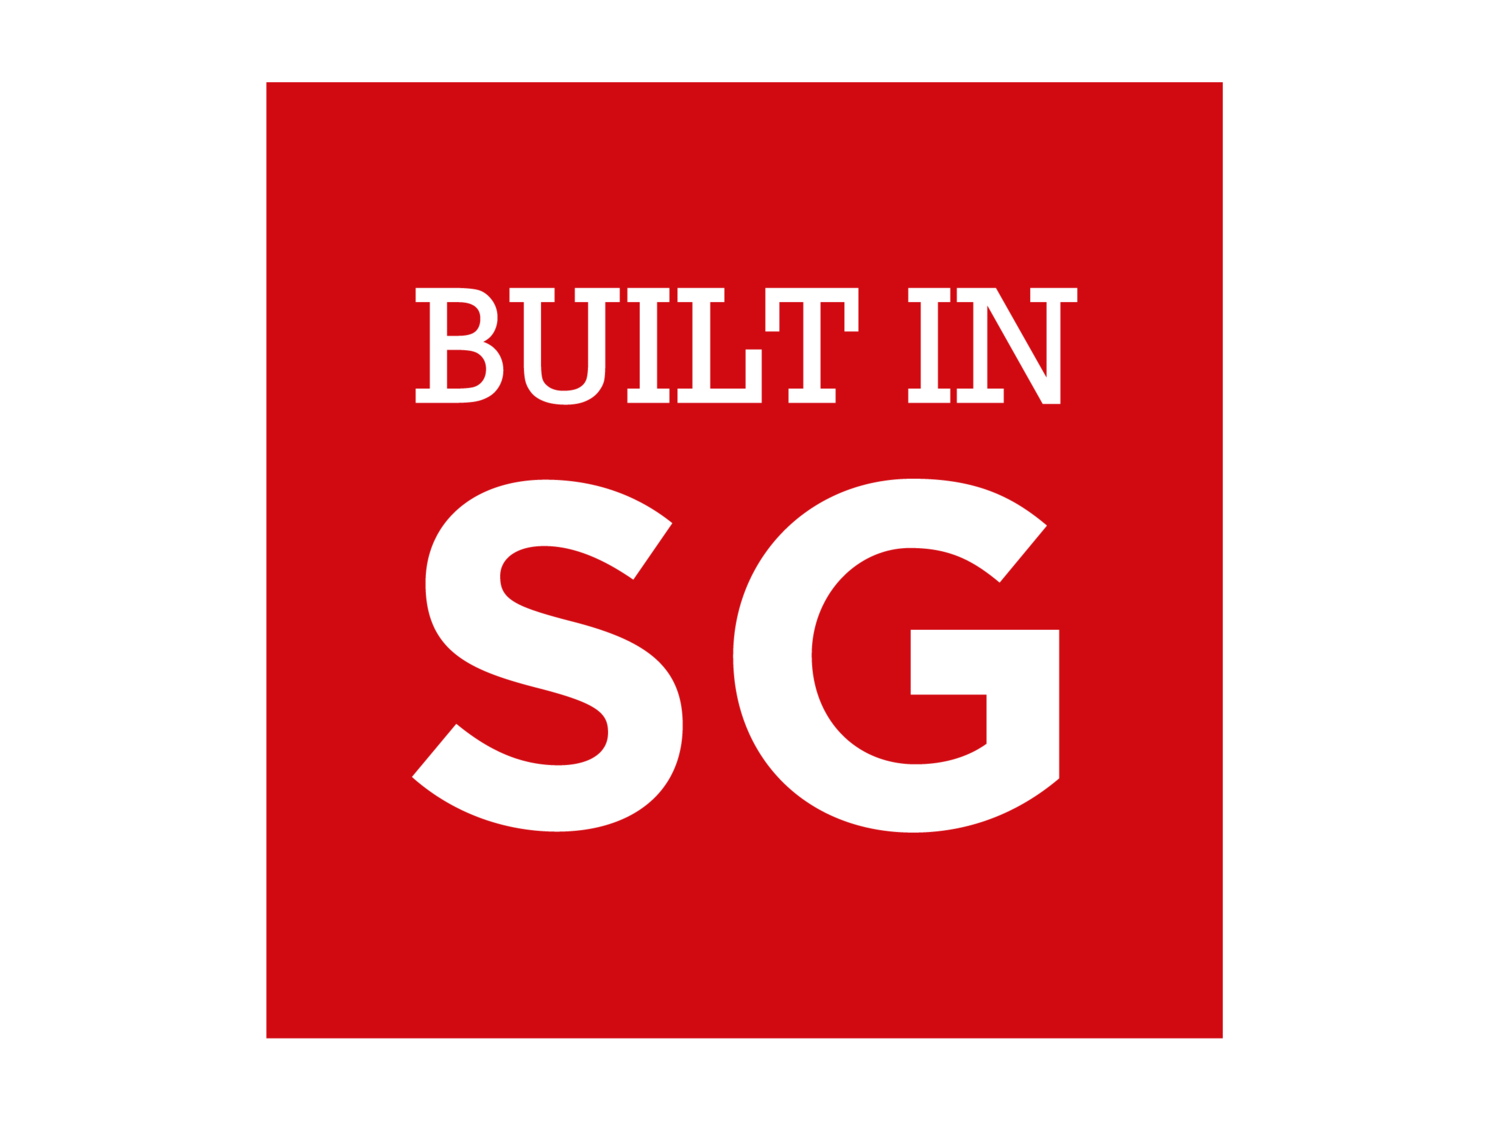 BuiltinSG